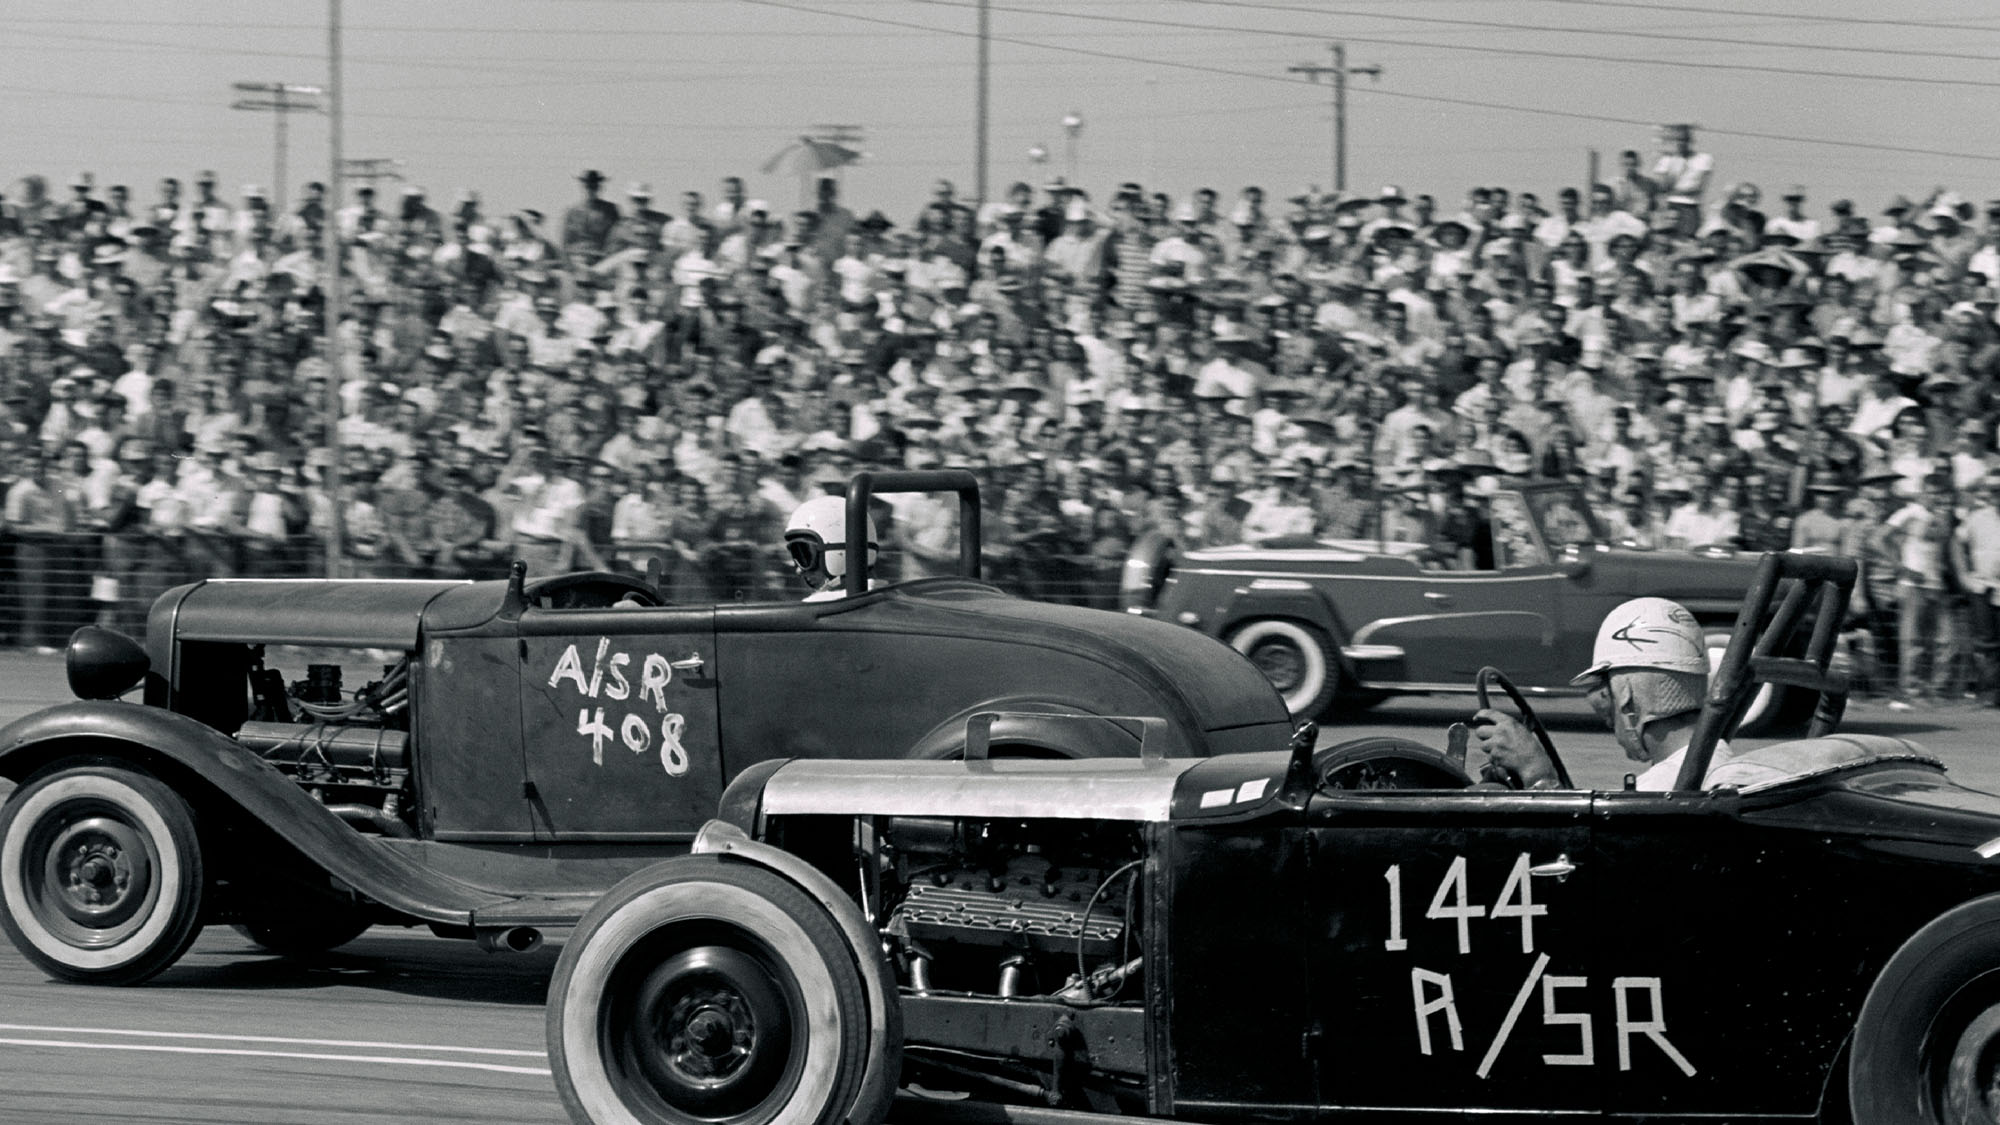 UNITED STATES - SEPTEMBER 03: 1958 NHRA National Drag Races - Oklahoma City. The more modern powered Street Roadster in the far lane pulls a hole shot on the flathead-equipped car in the near lane. (Photo by Bob D'Olivo/The Enthusiast Network via Getty Images/Getty Images)